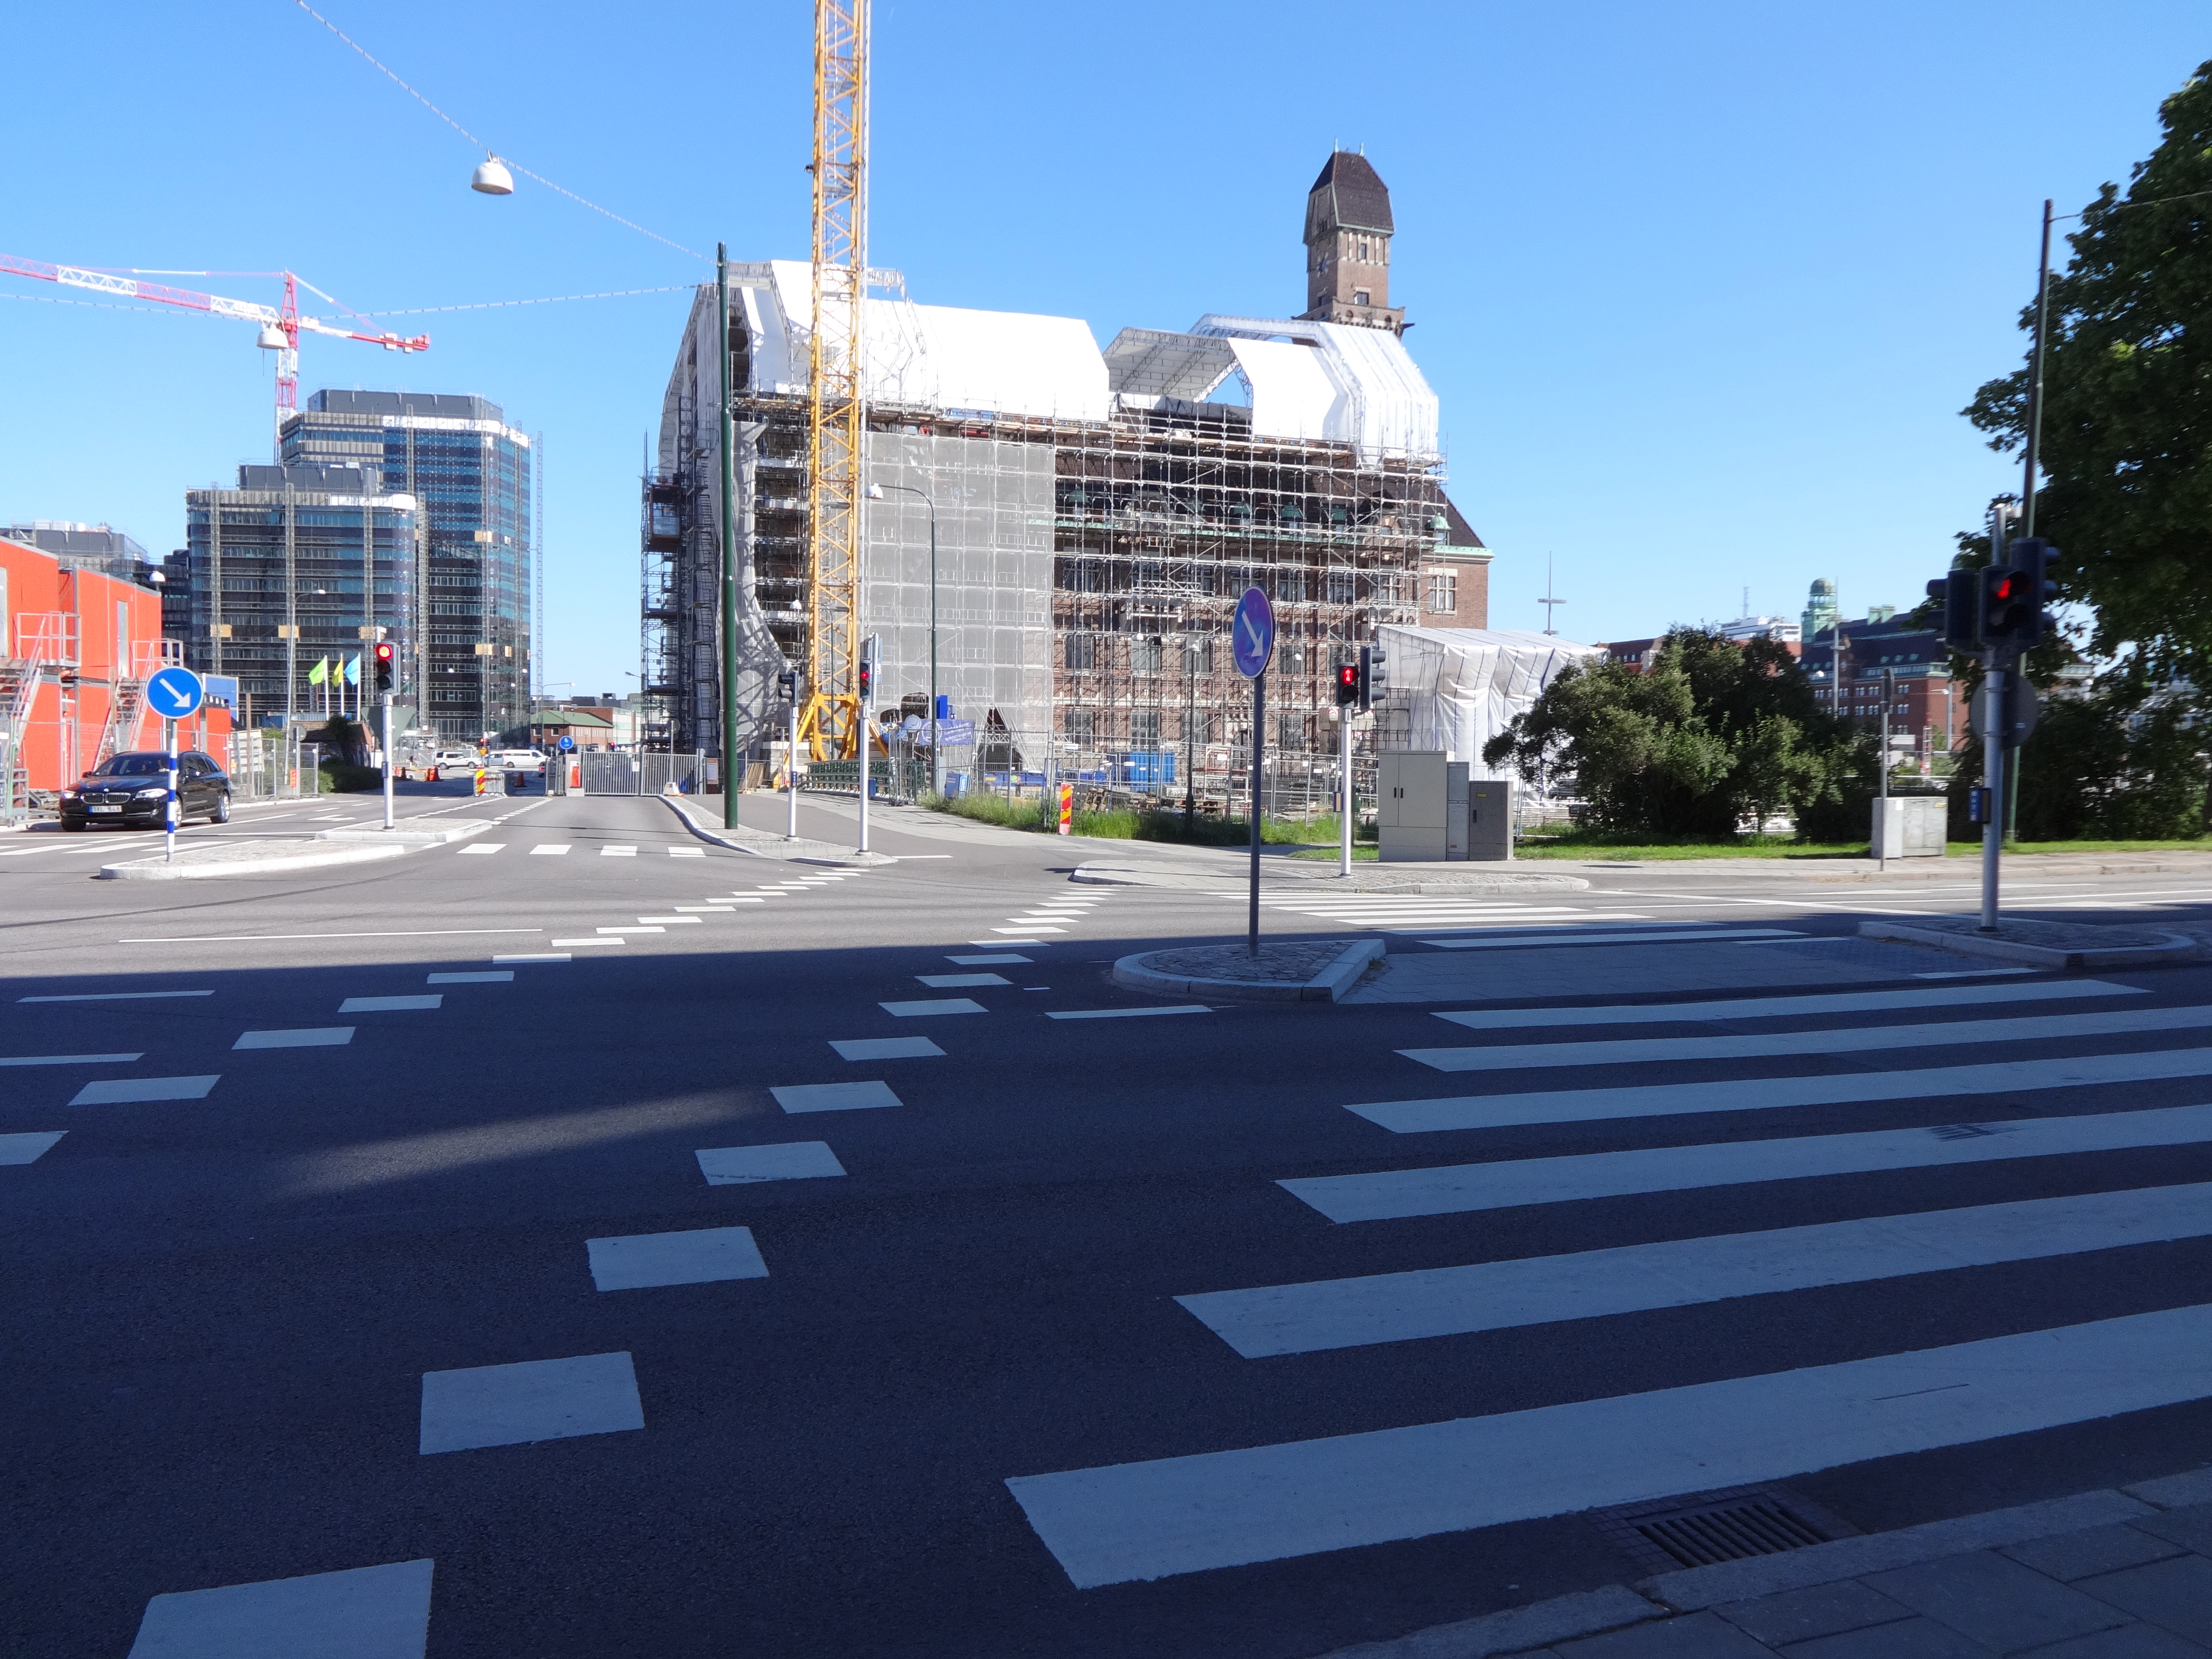 It was hard to get pictures of the intersections, but the right is where pedestrians cross and the left (between the diamonds) is for bikes. The pedestrian signal is on the right and the skinny signal in the middle of the picture is for bikes.